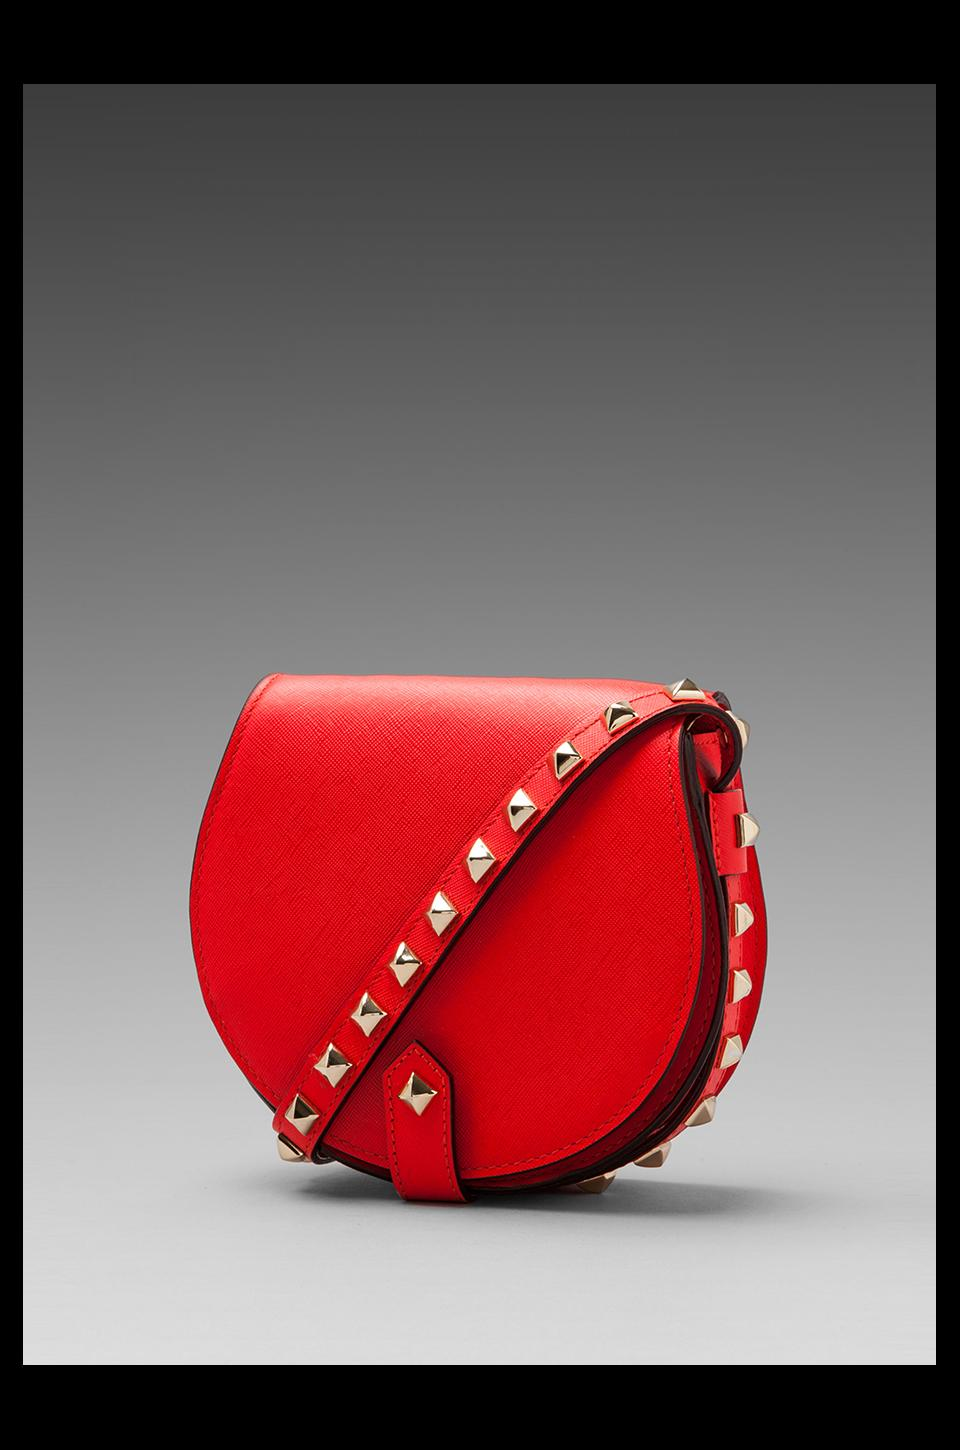 Rebecca Minkoff Skylar Mini Bag in Fire Engine